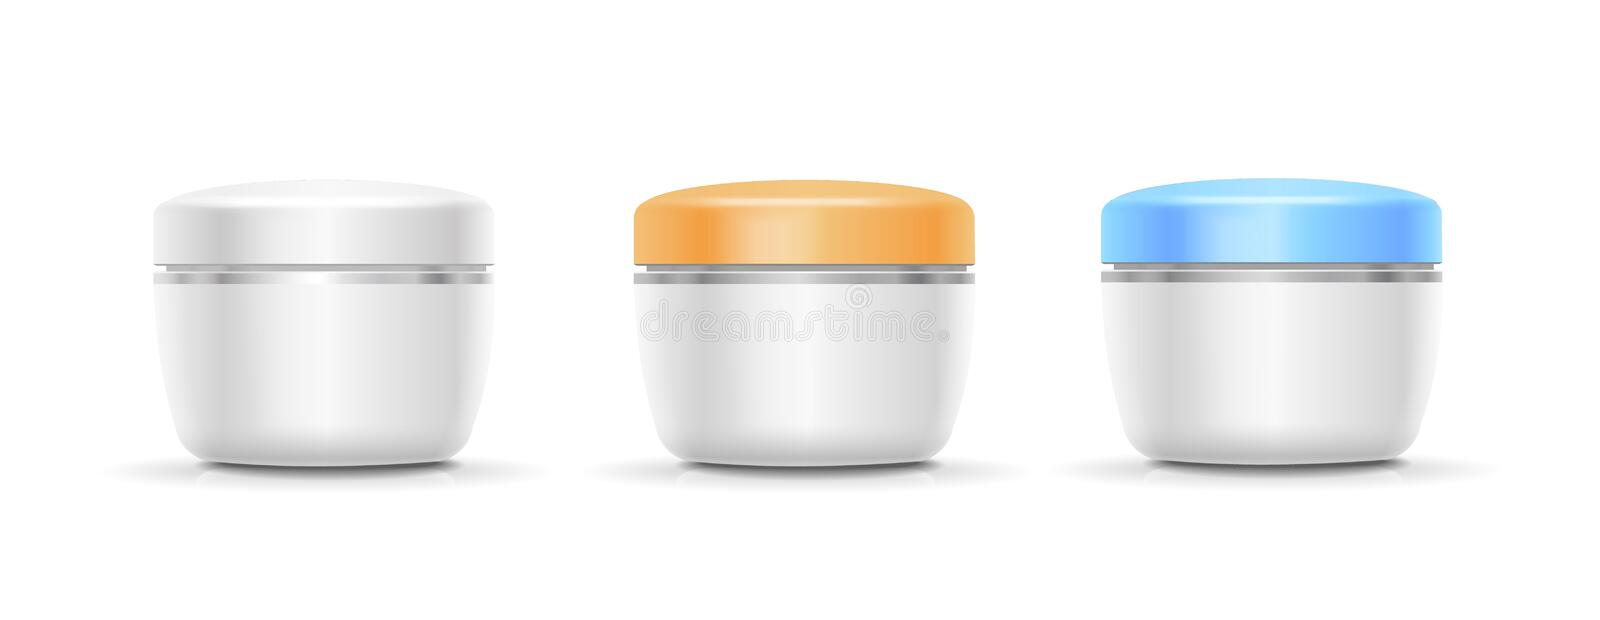 Blank Cosmetic Container for Cream, Powder or Gel. Vector. Illustration royalty free illustration